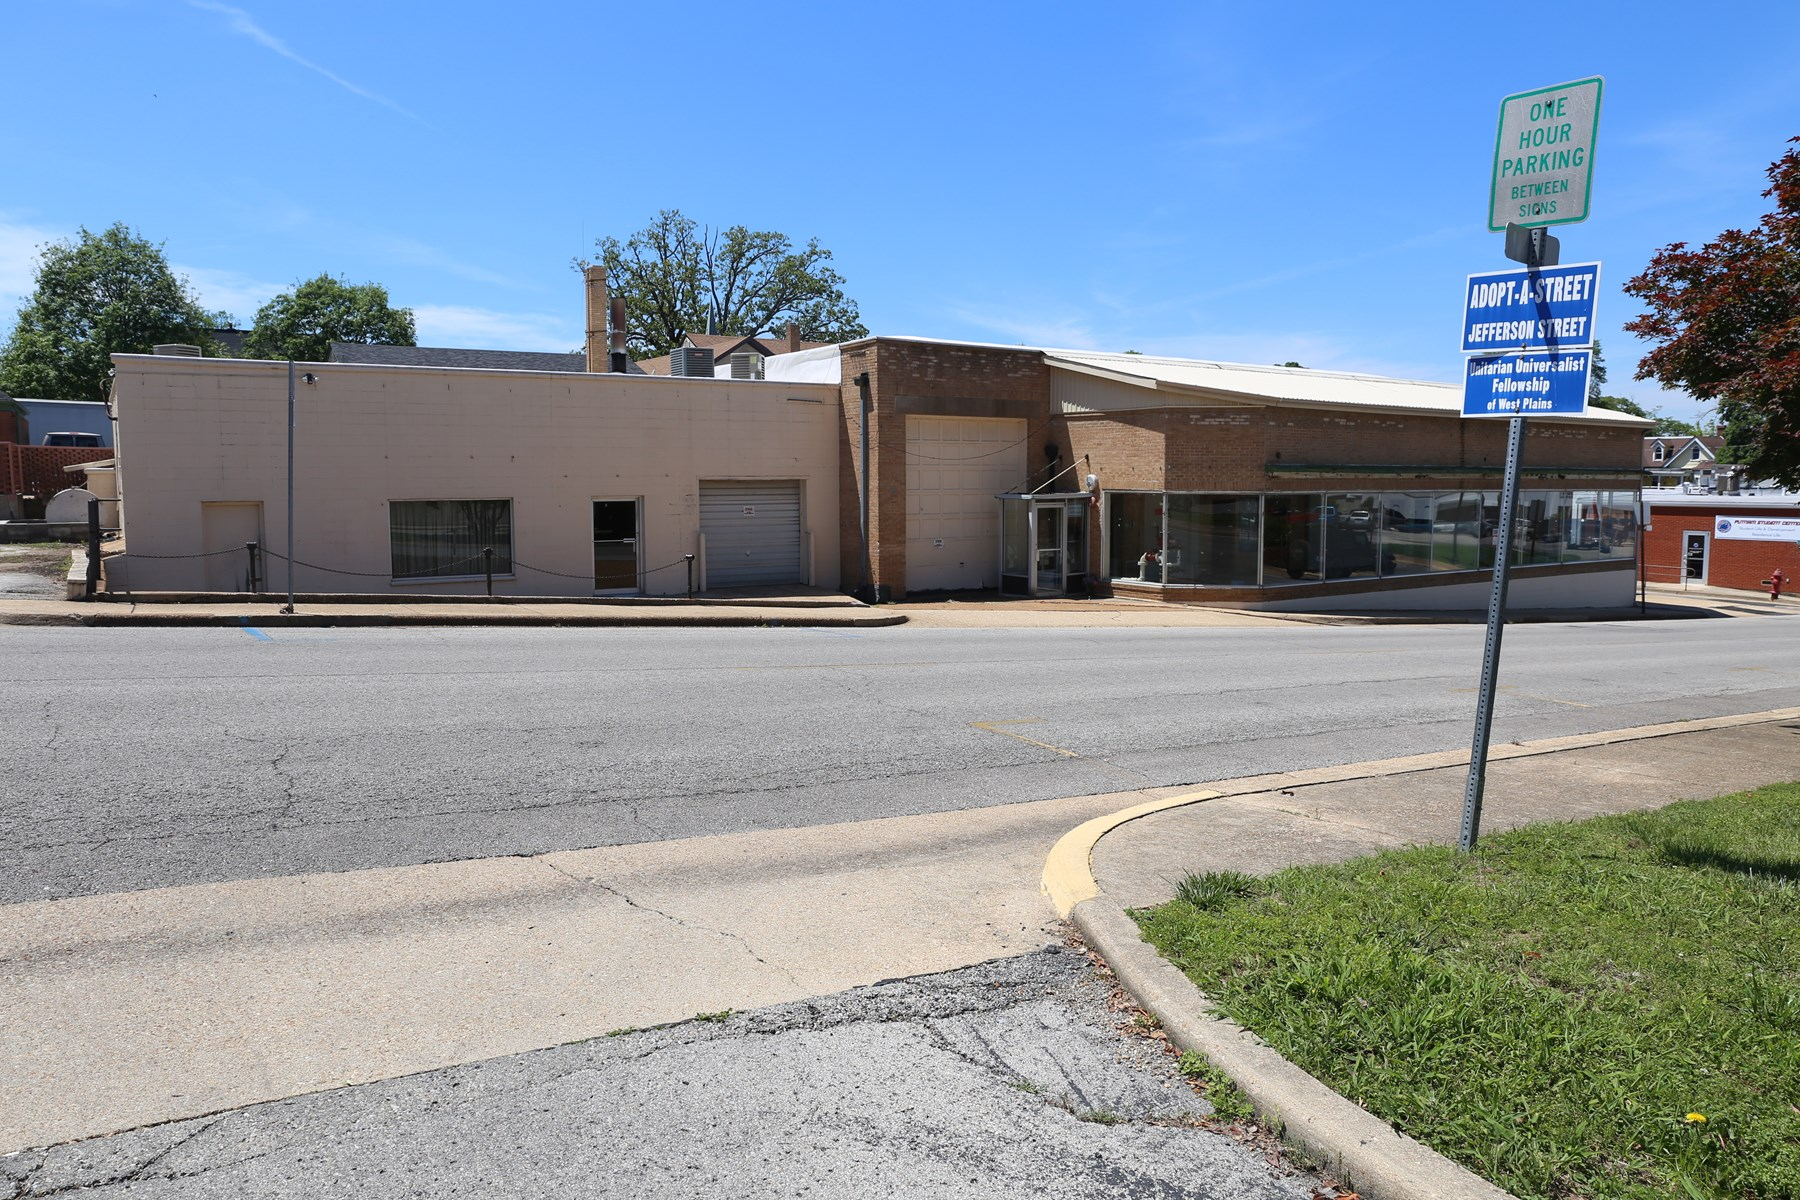 FOR SALE - LARGE COMMERCIAL BUILDING IN WEST PLAINS, MO